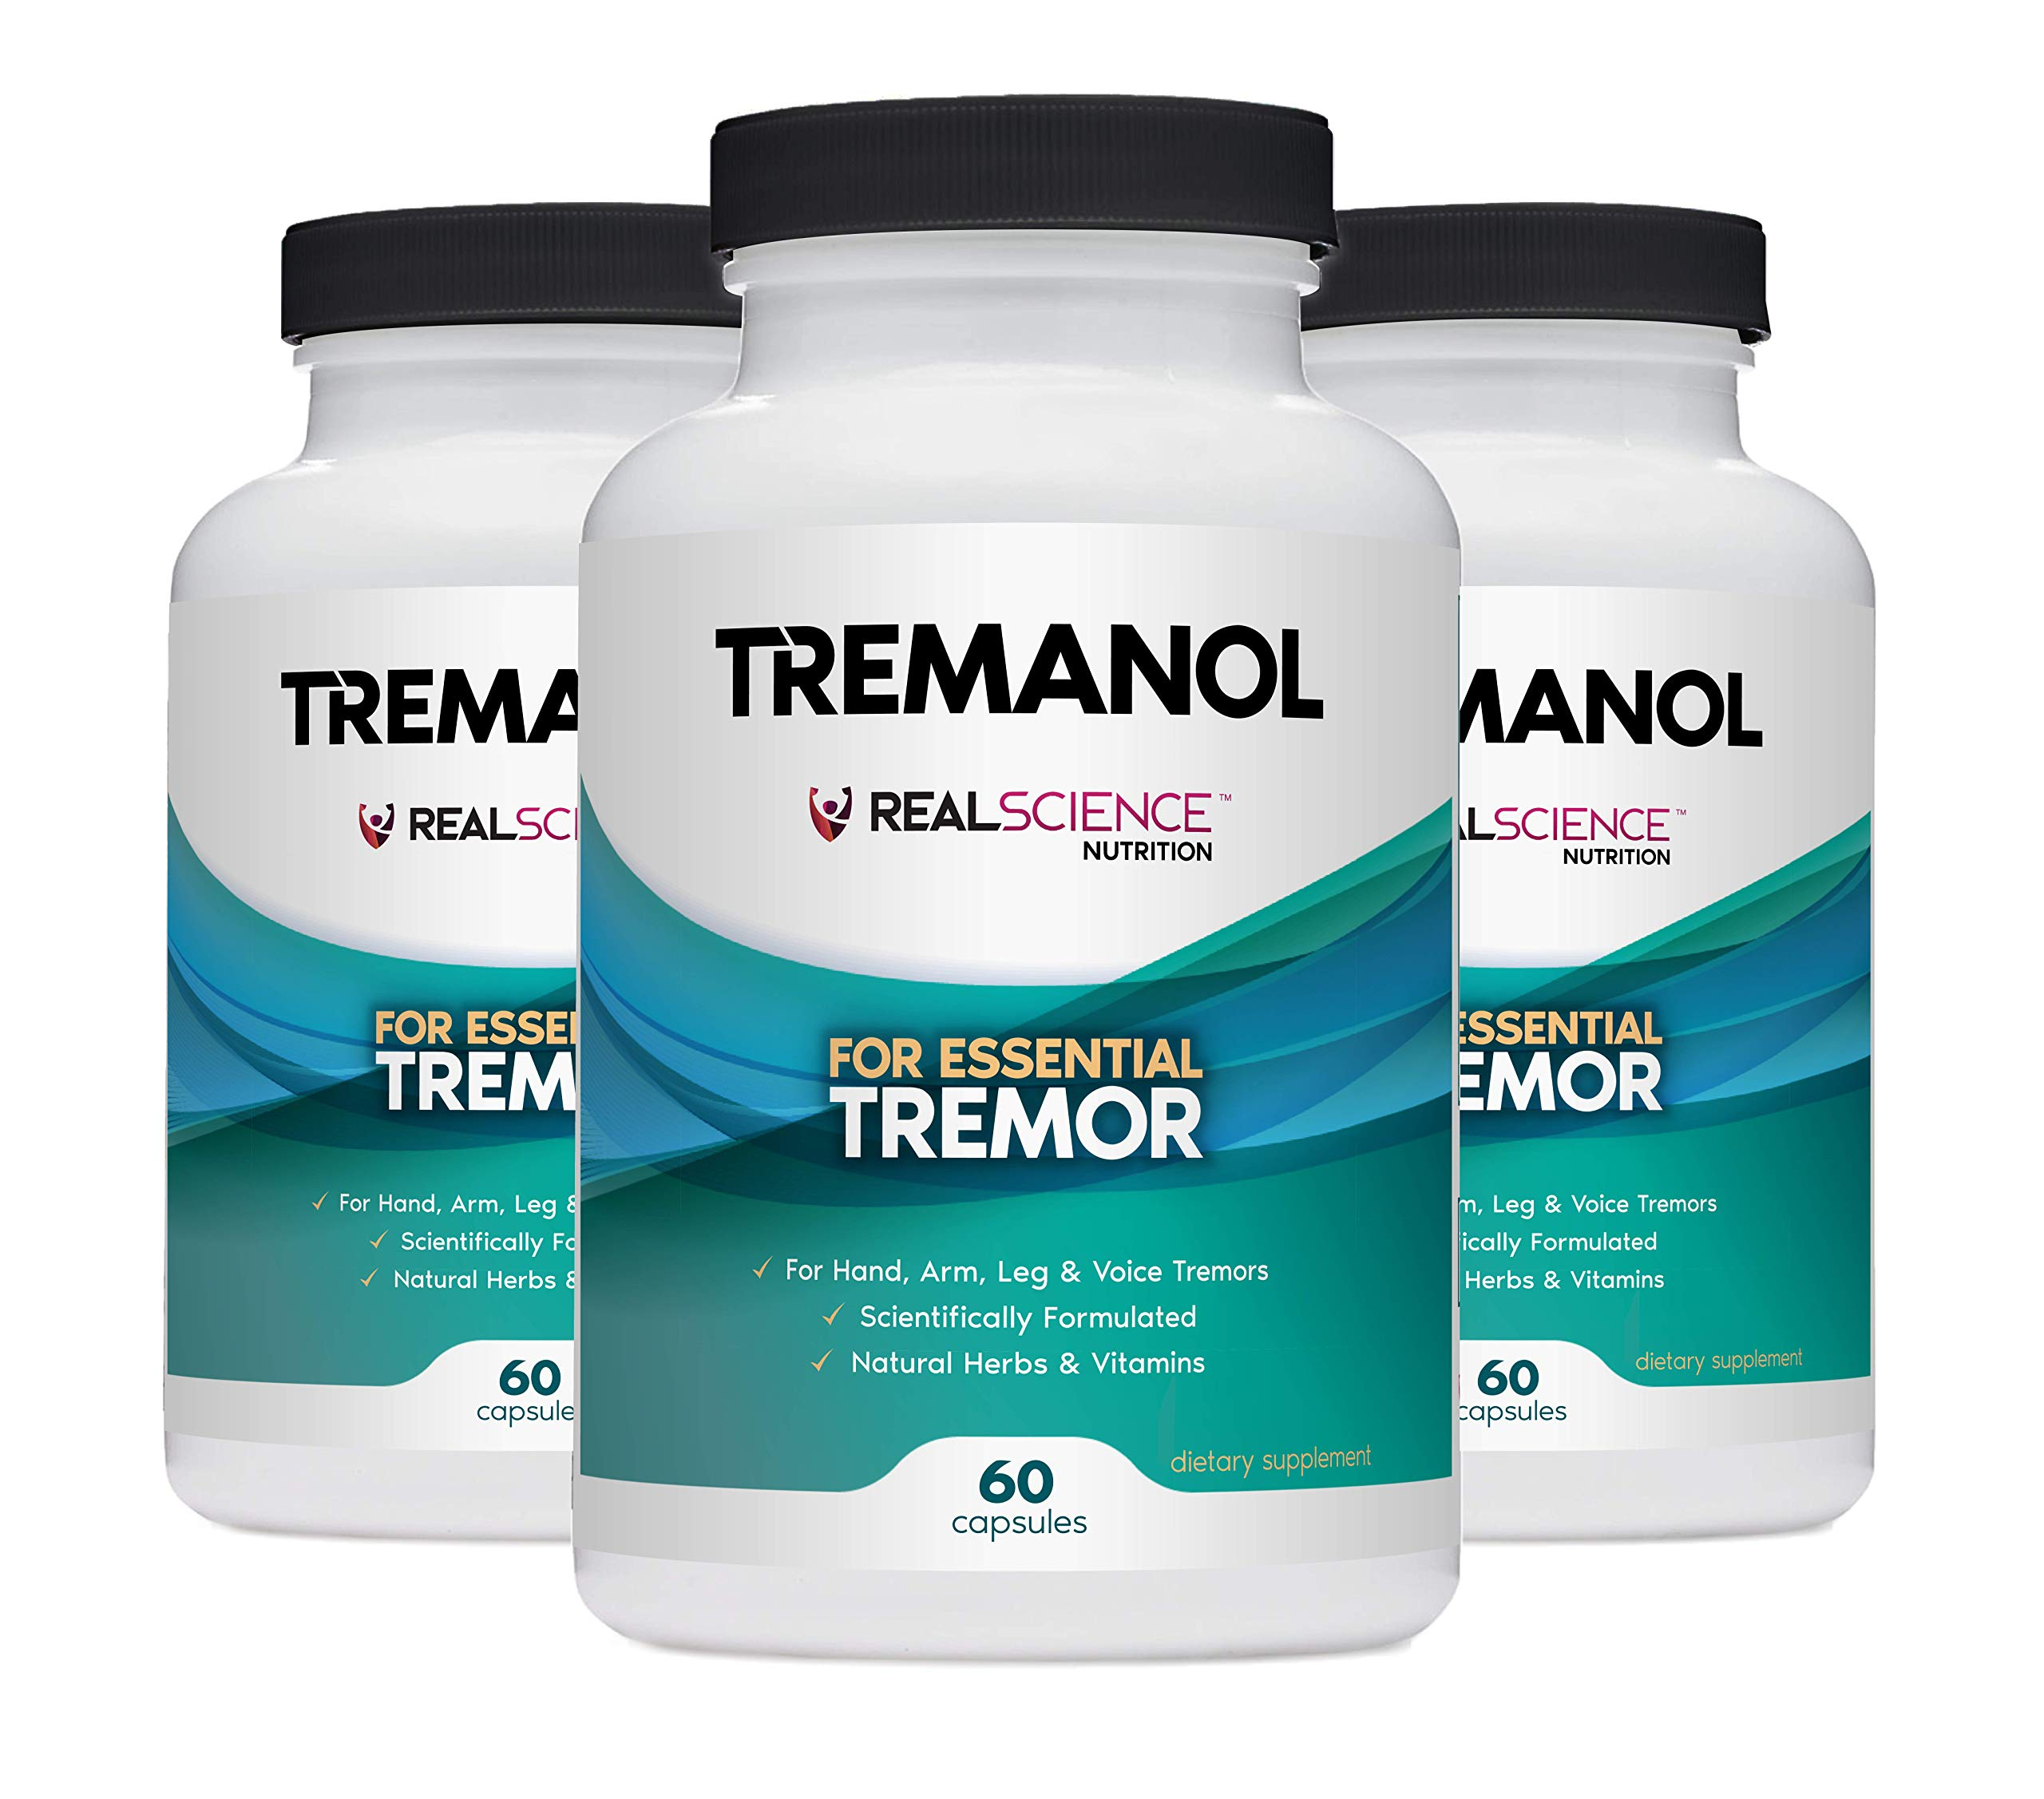 Tremanol - Pack of 3 - Natural Aid for Essential Tremor - Provides Relief for Shaky Hands, Arm, Leg, & Voice Tremors by Tremanol